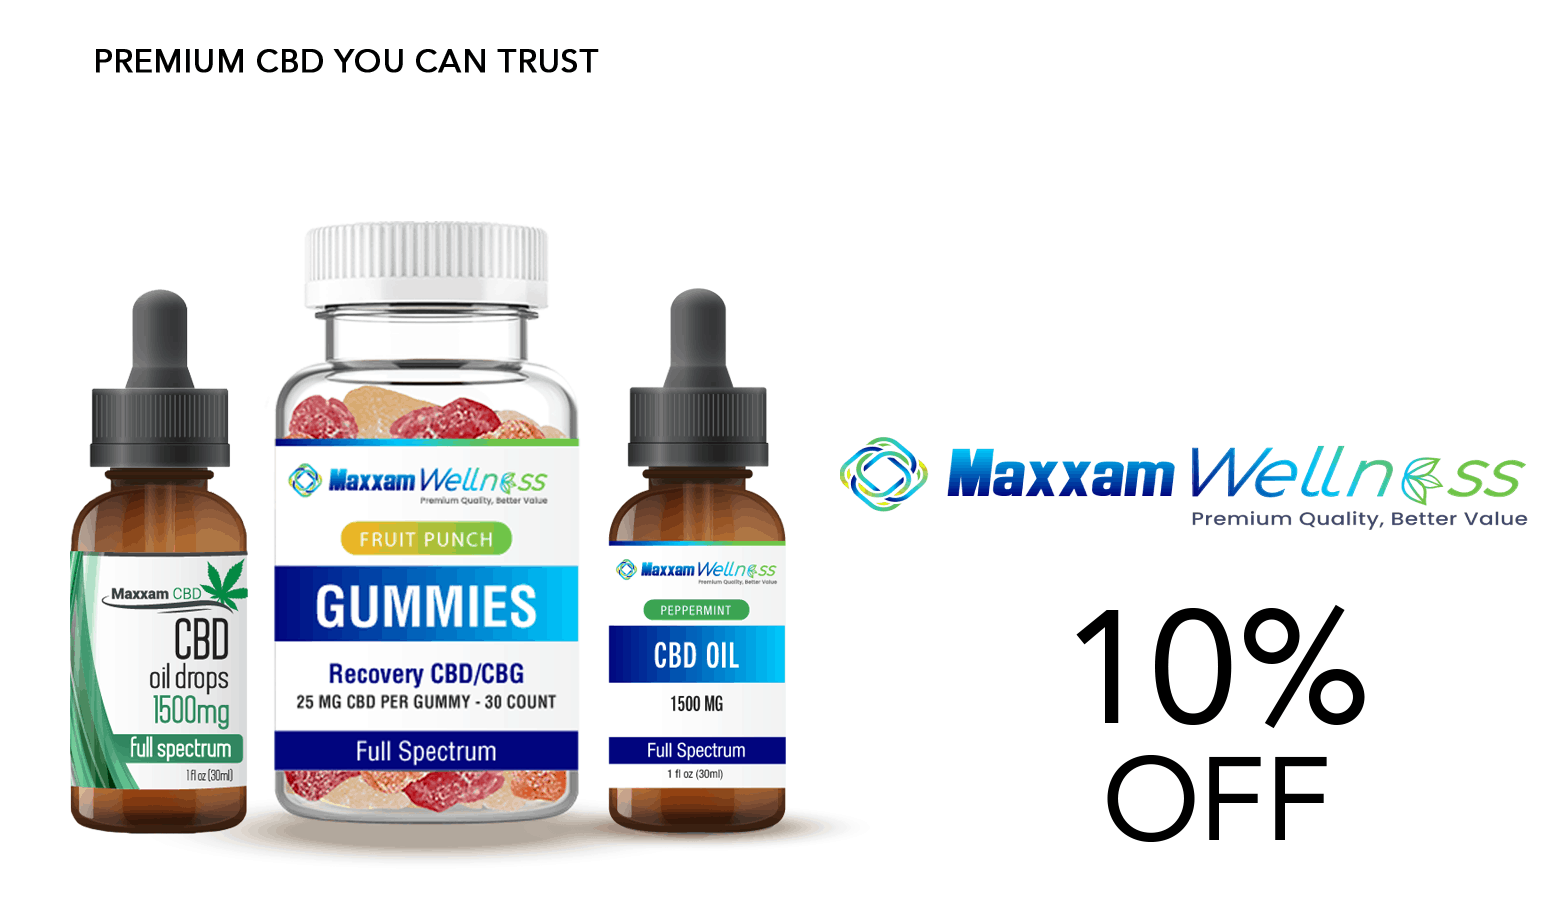 Maxxam Wellness CBD Coupon Code Offer Website